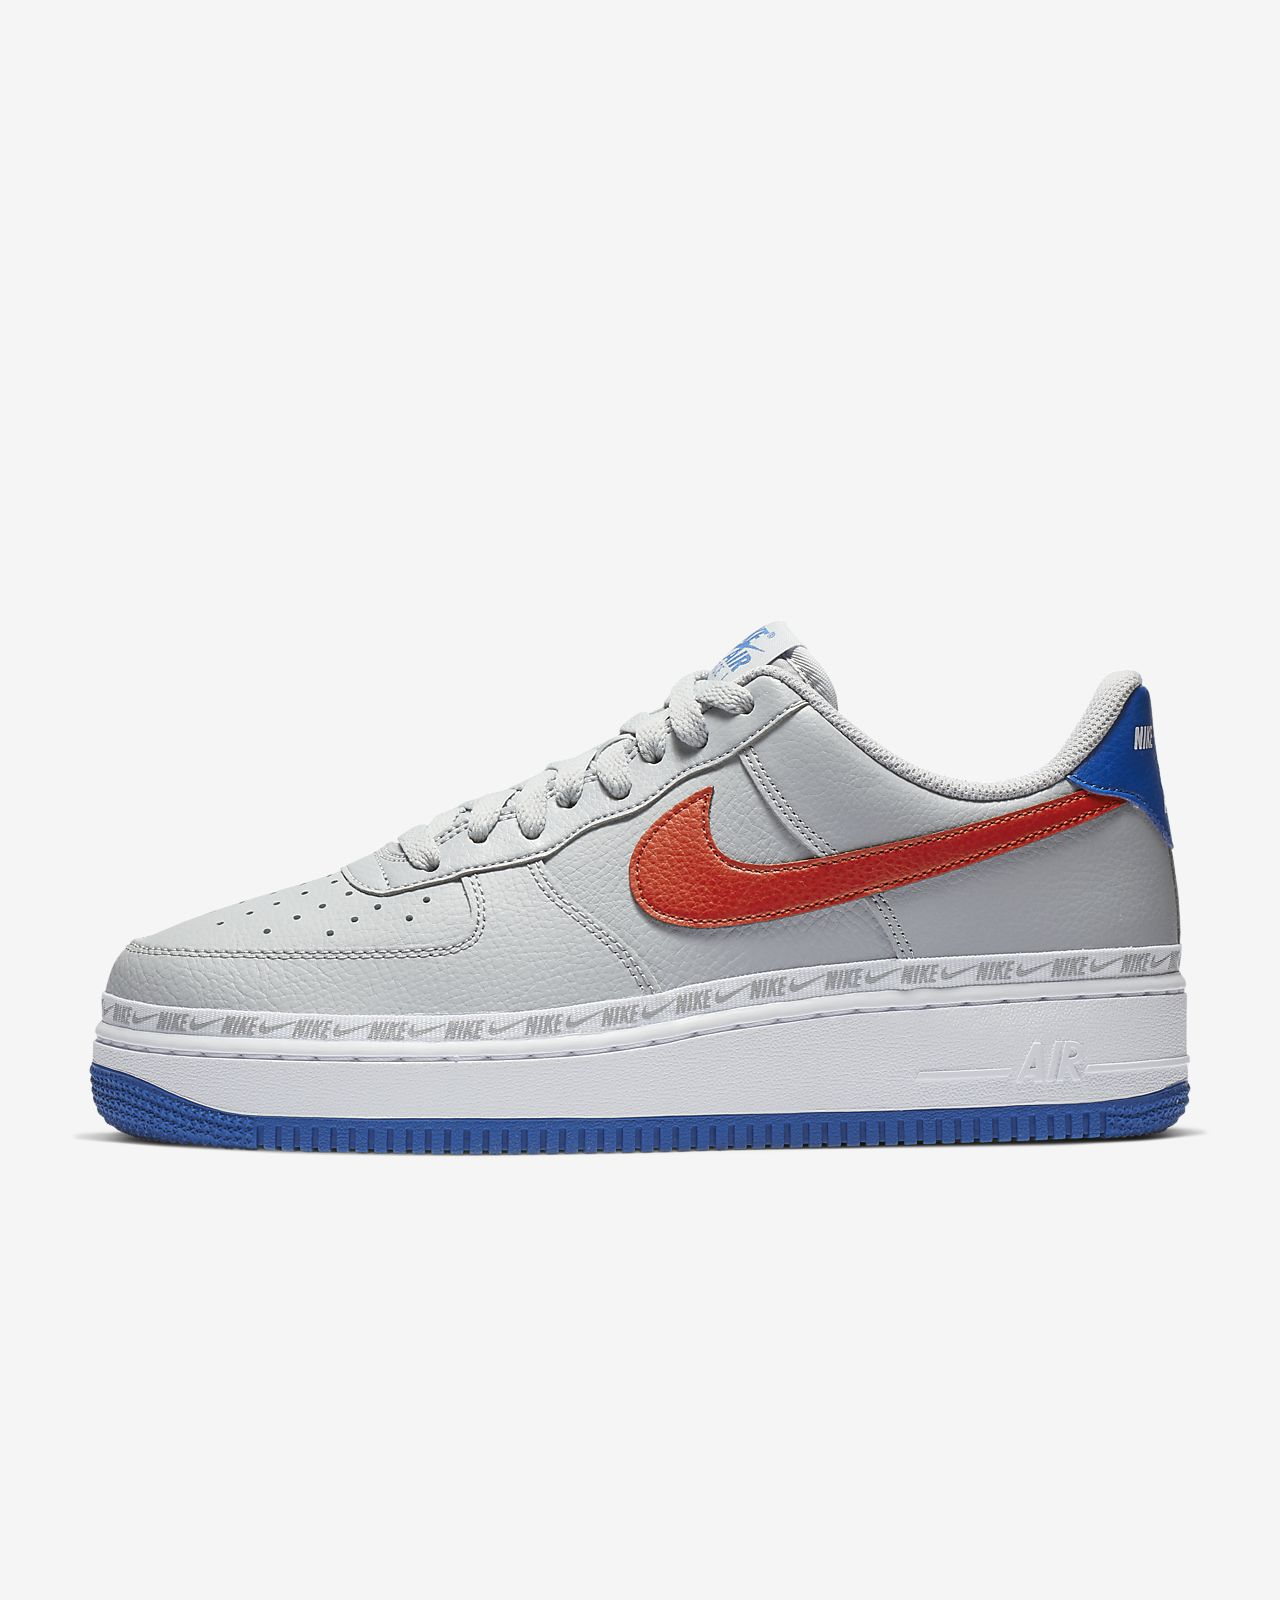 91ecfc17240 Chaussure Nike Air Force 1  07 LV8 pour Homme. Nike.com FR